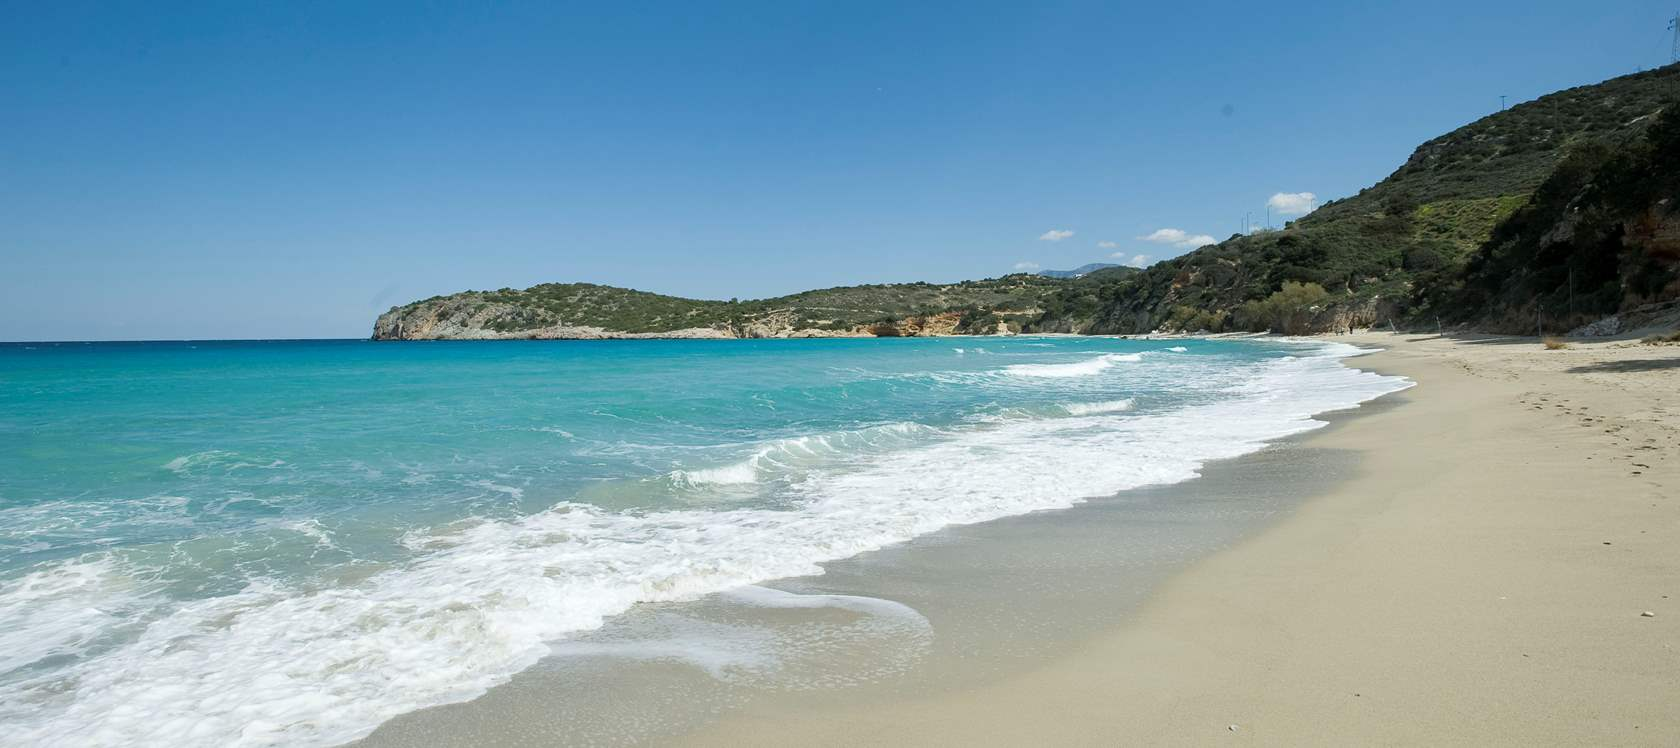 Istron or Voulisma beach South 30 to 40min